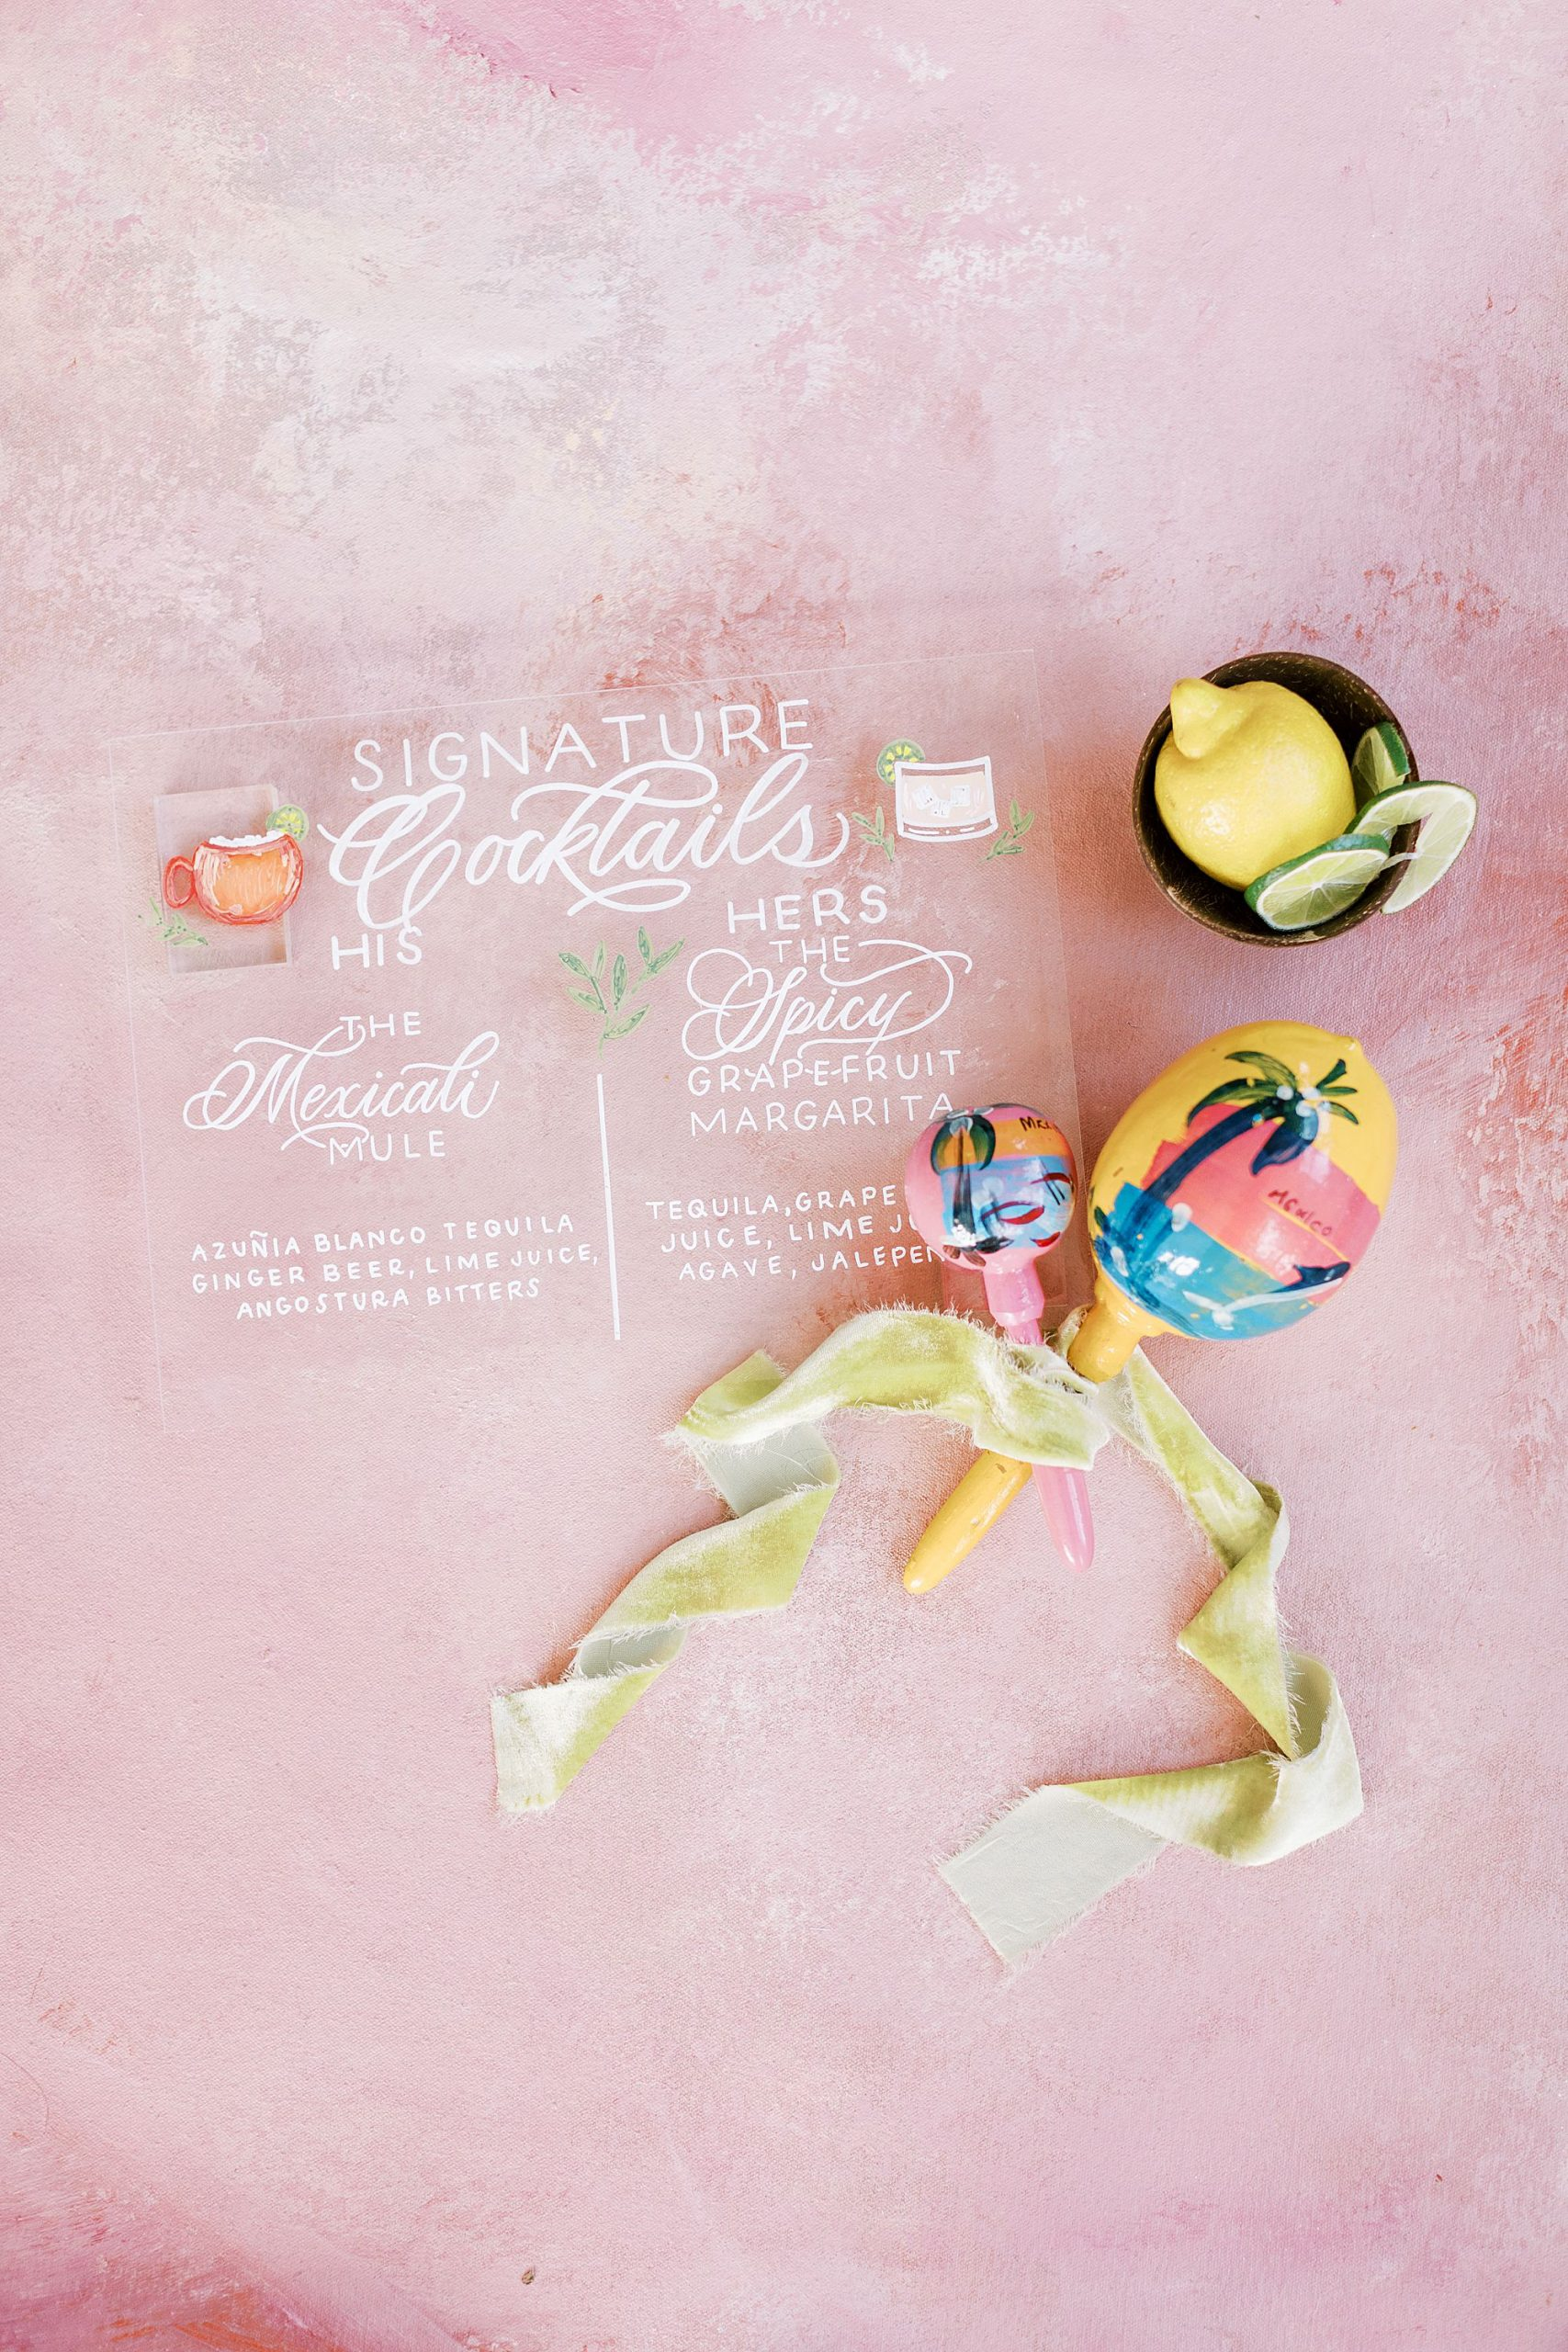 Cinco De Mayo Inspiration for Your FIesta - Party Crush Studio and Ashley Baumgartner_0003.jpg